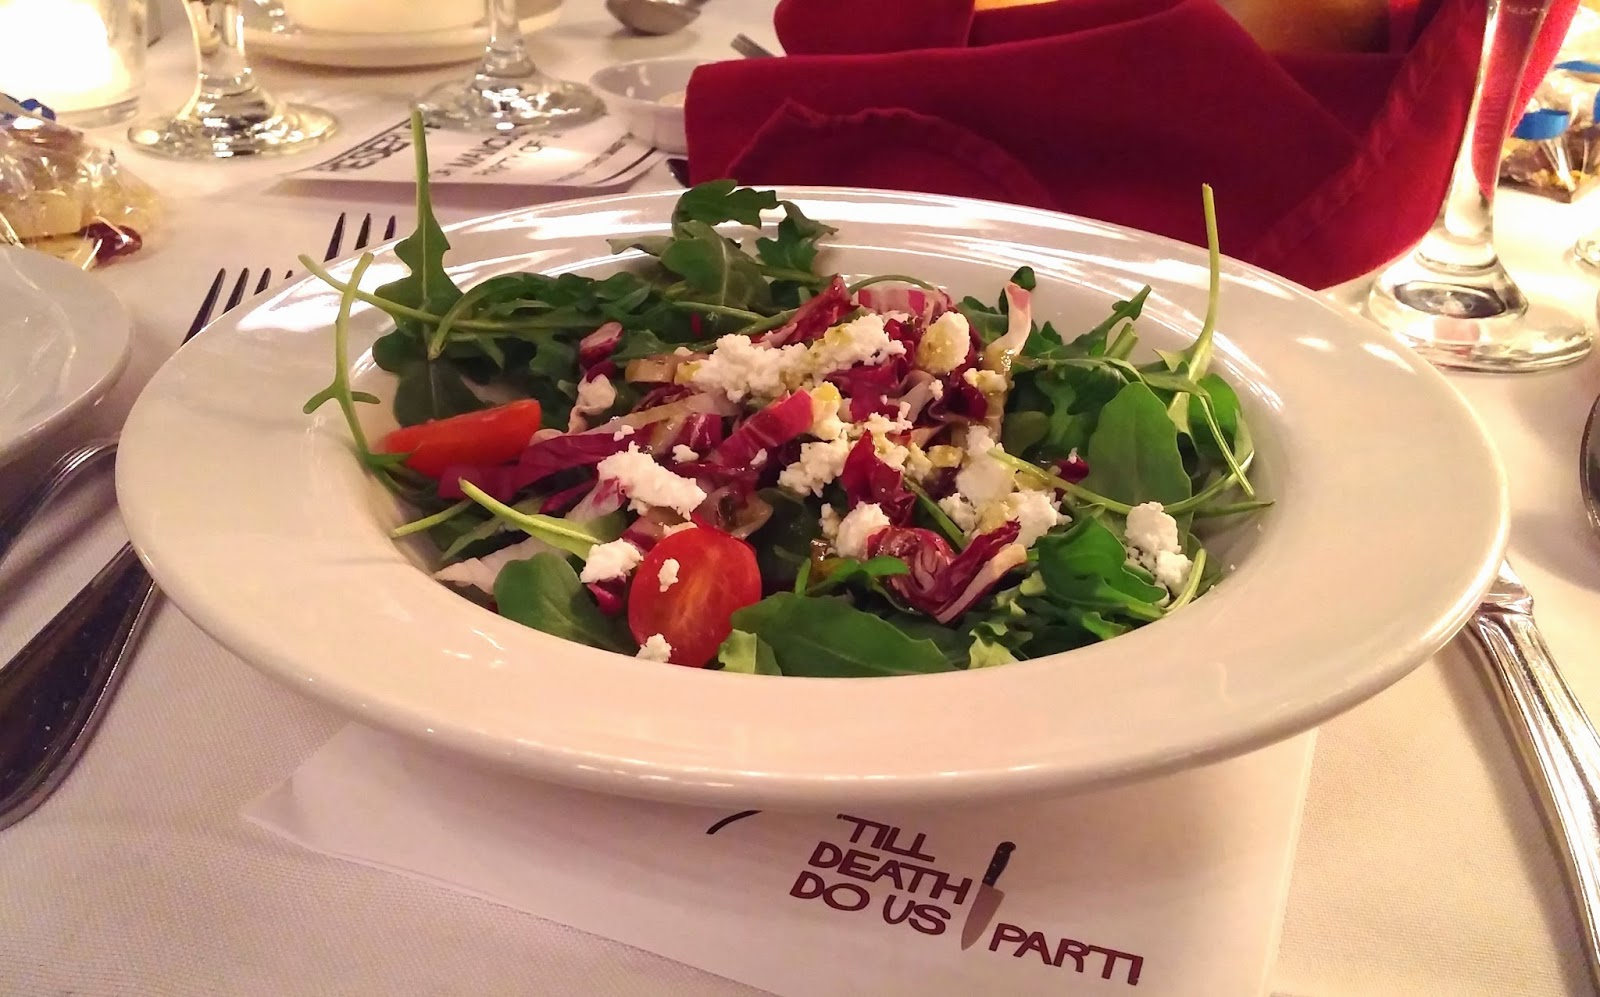 Mysteriously Yours Dinner Theatre: Getting Hitched -arugula salad